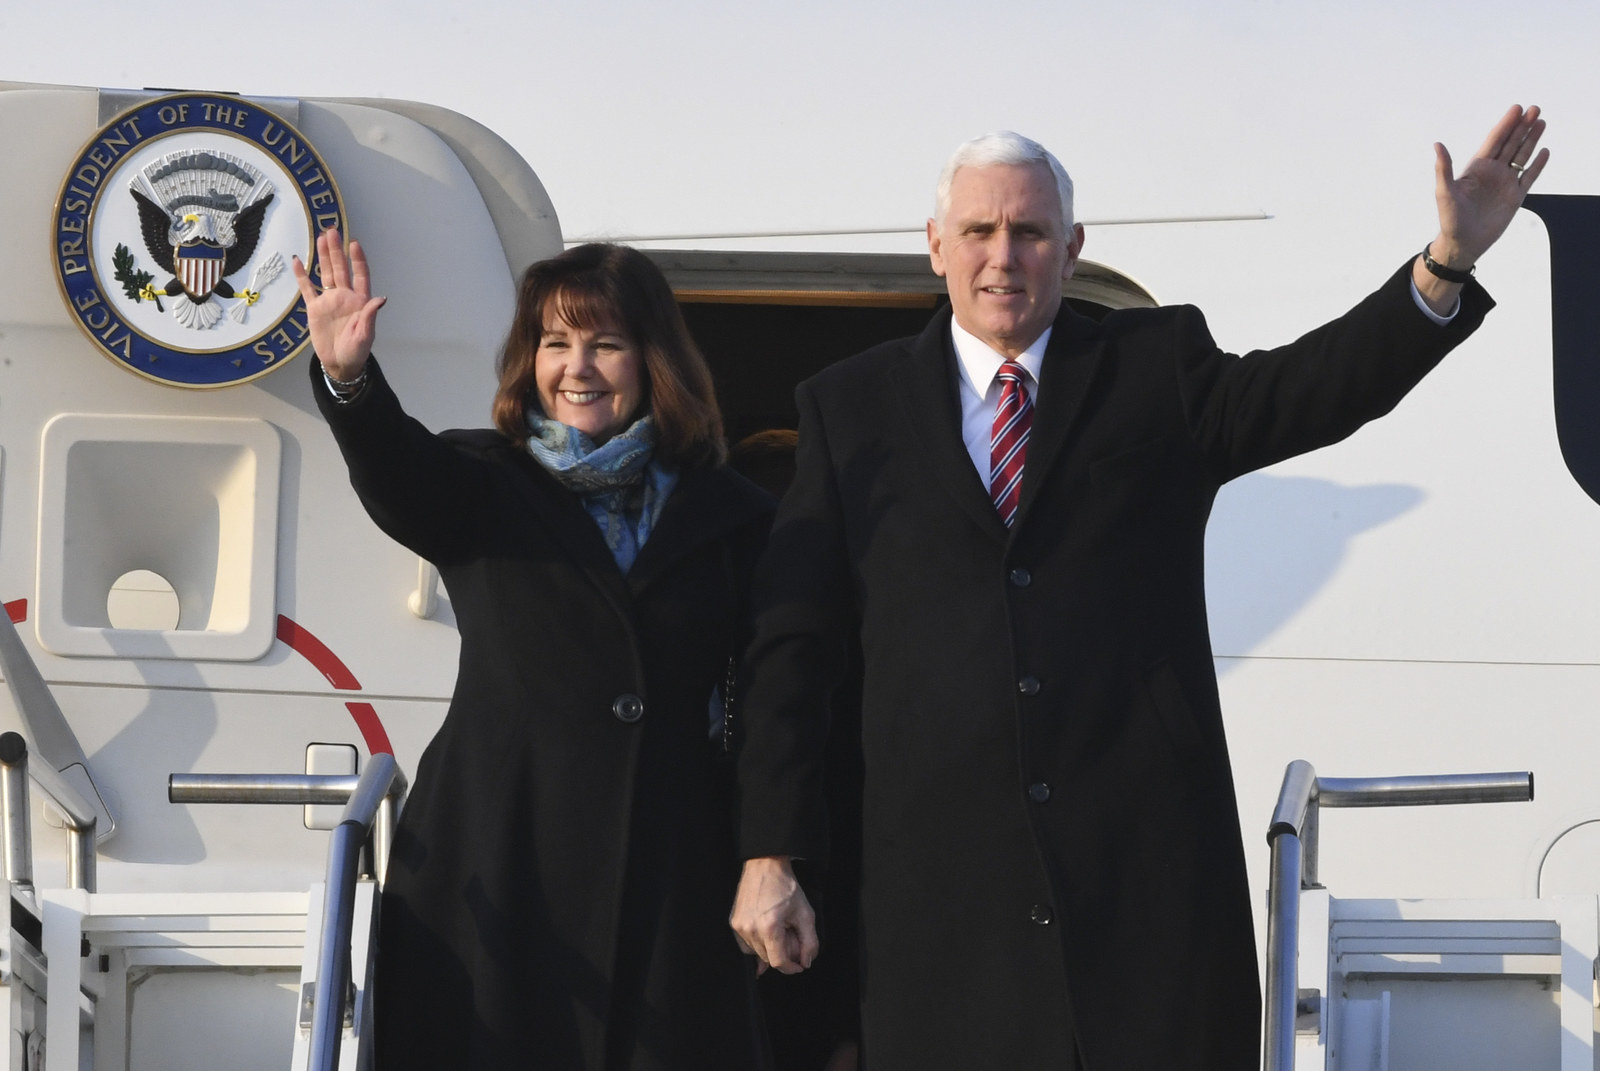 """Mike Pence has long been opposed to same-sex marriage, once saying that it would cause  """"societal collapse.""""  He's also been accused of previously supporting  conversion therapy . -  When he was governor of Indiana, Pence  signed  the Religious Freedom Restoration Act in 2015, which critics said would allow discrimination against LGBT people."""